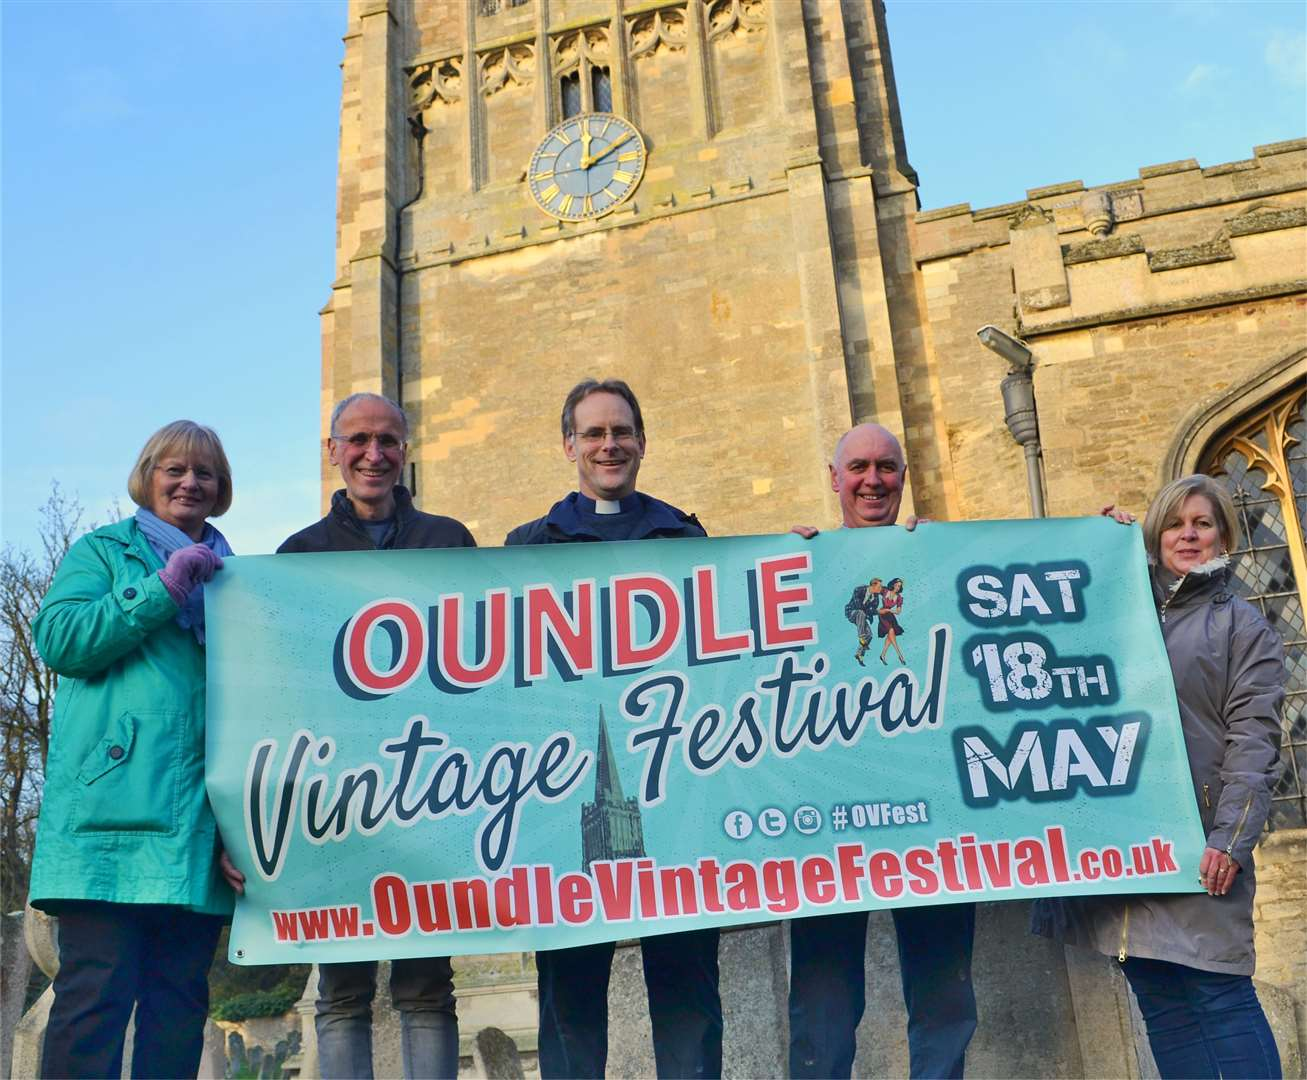 Oundle Vintage Festival in aid of the clock